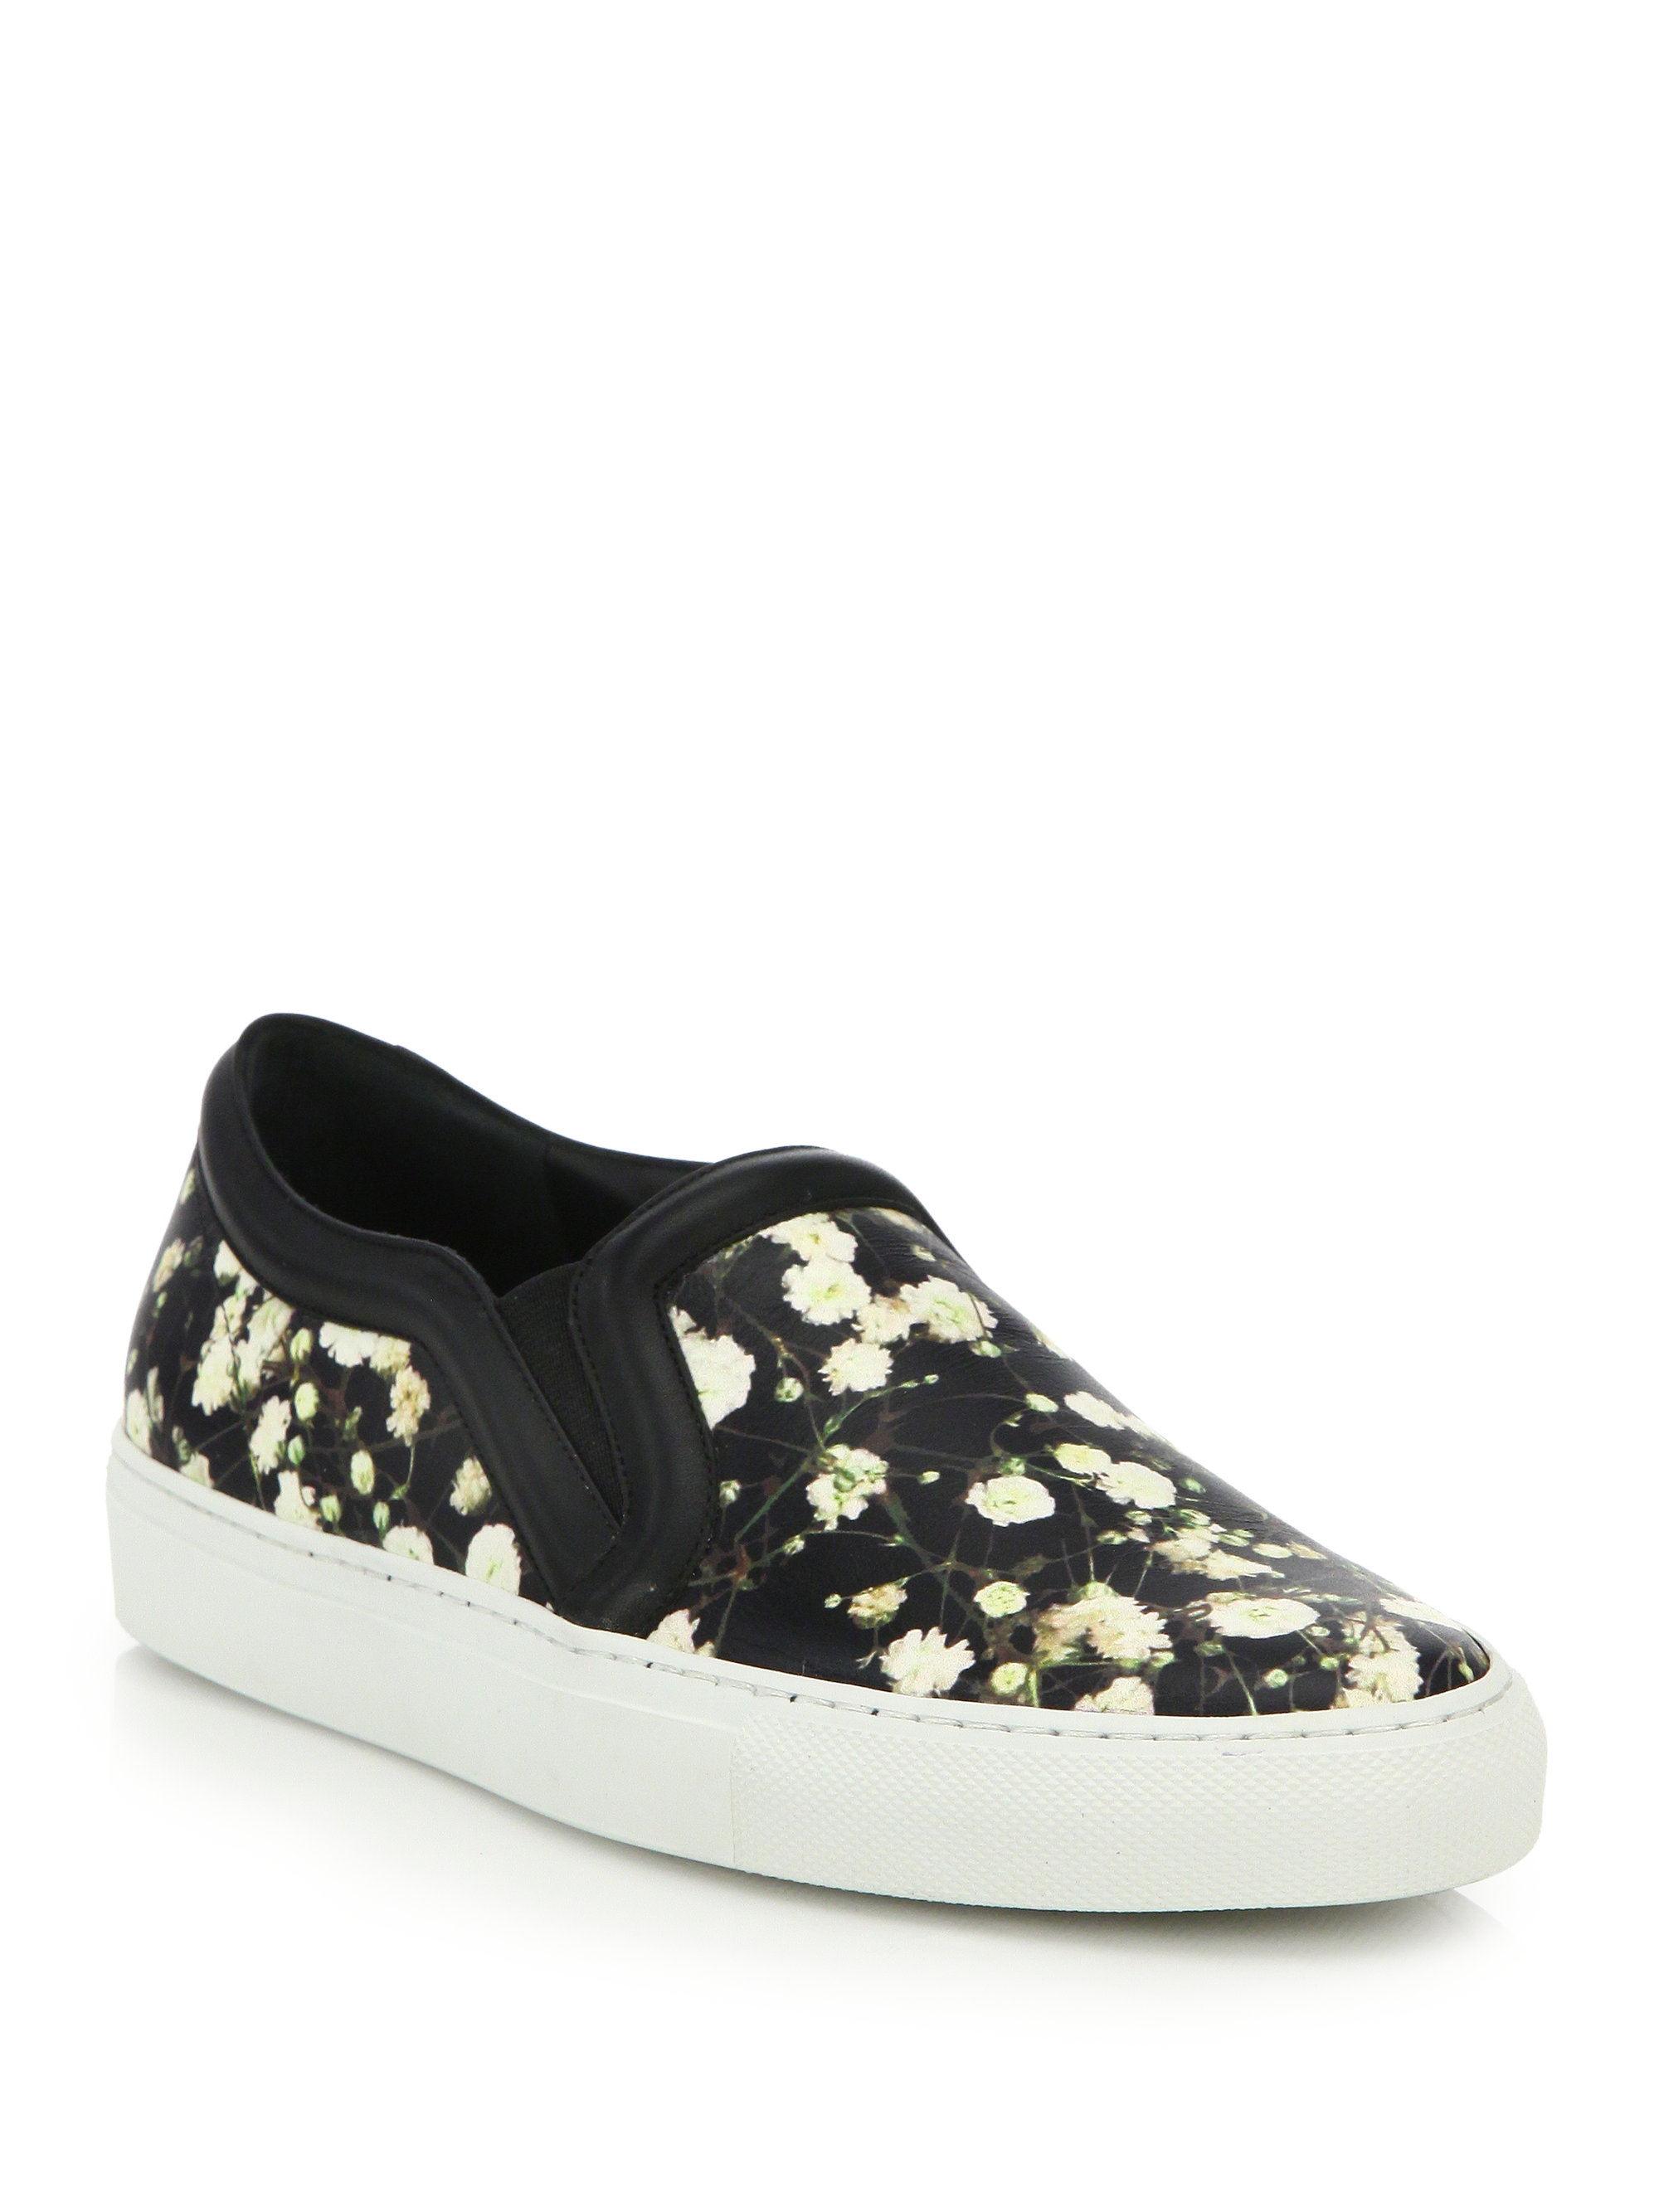 Lyst Givenchy Baby s Breath Printed Leather Skate Sneakers